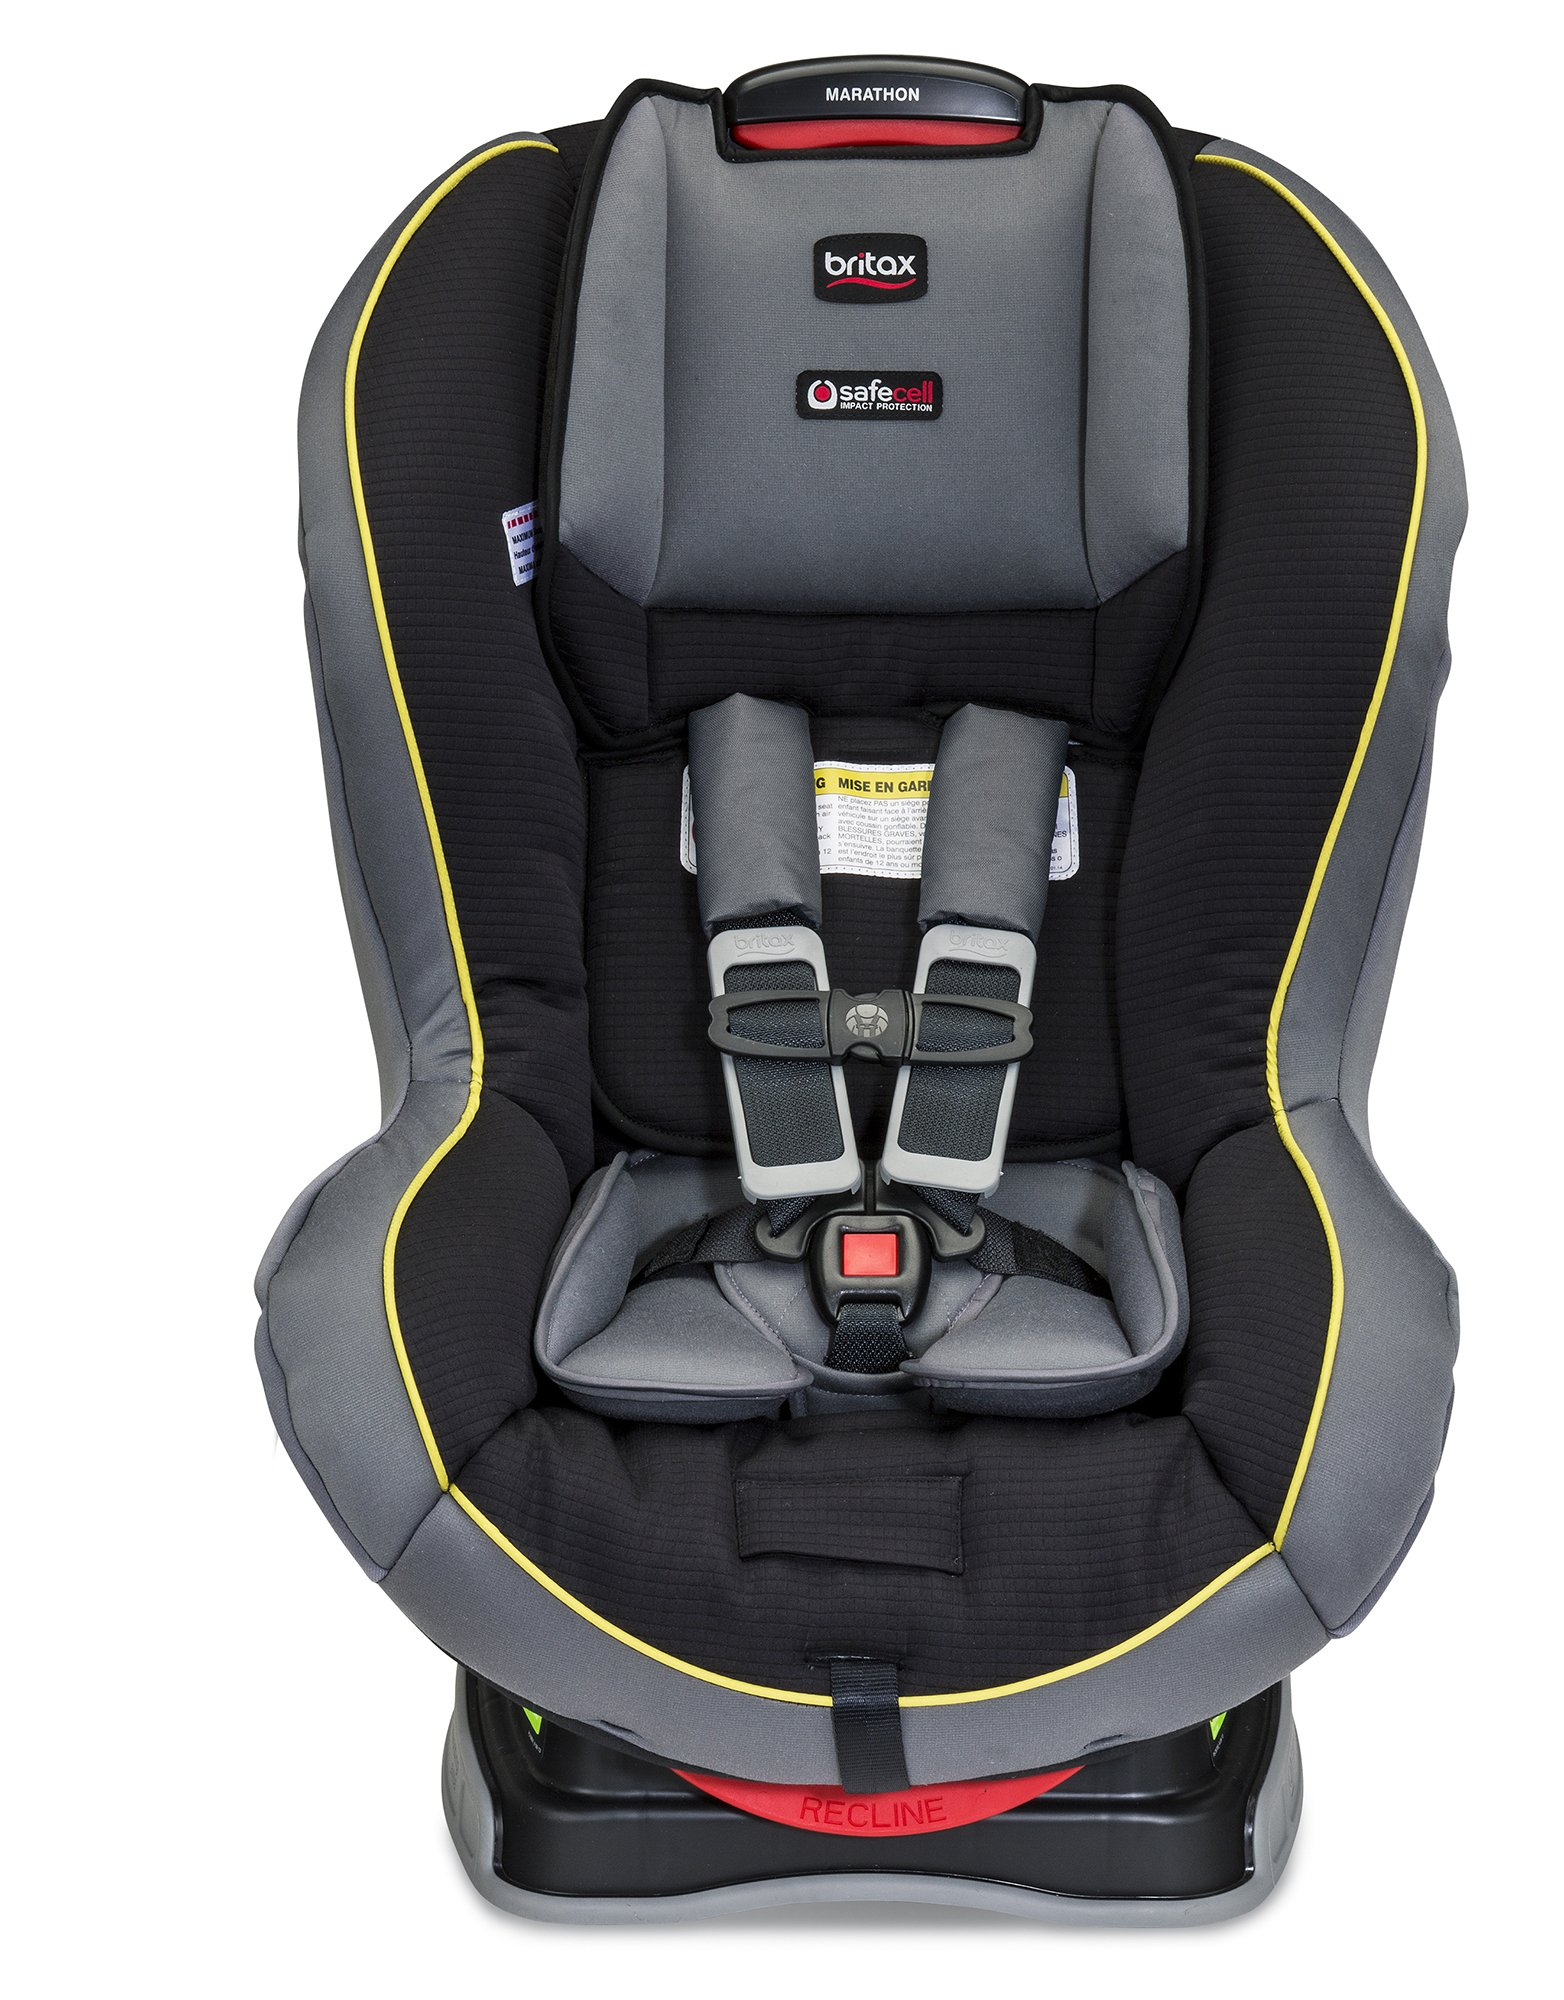 britax pioneer g1 1 harness 2 booster car seat silver cloud baby. Black Bedroom Furniture Sets. Home Design Ideas